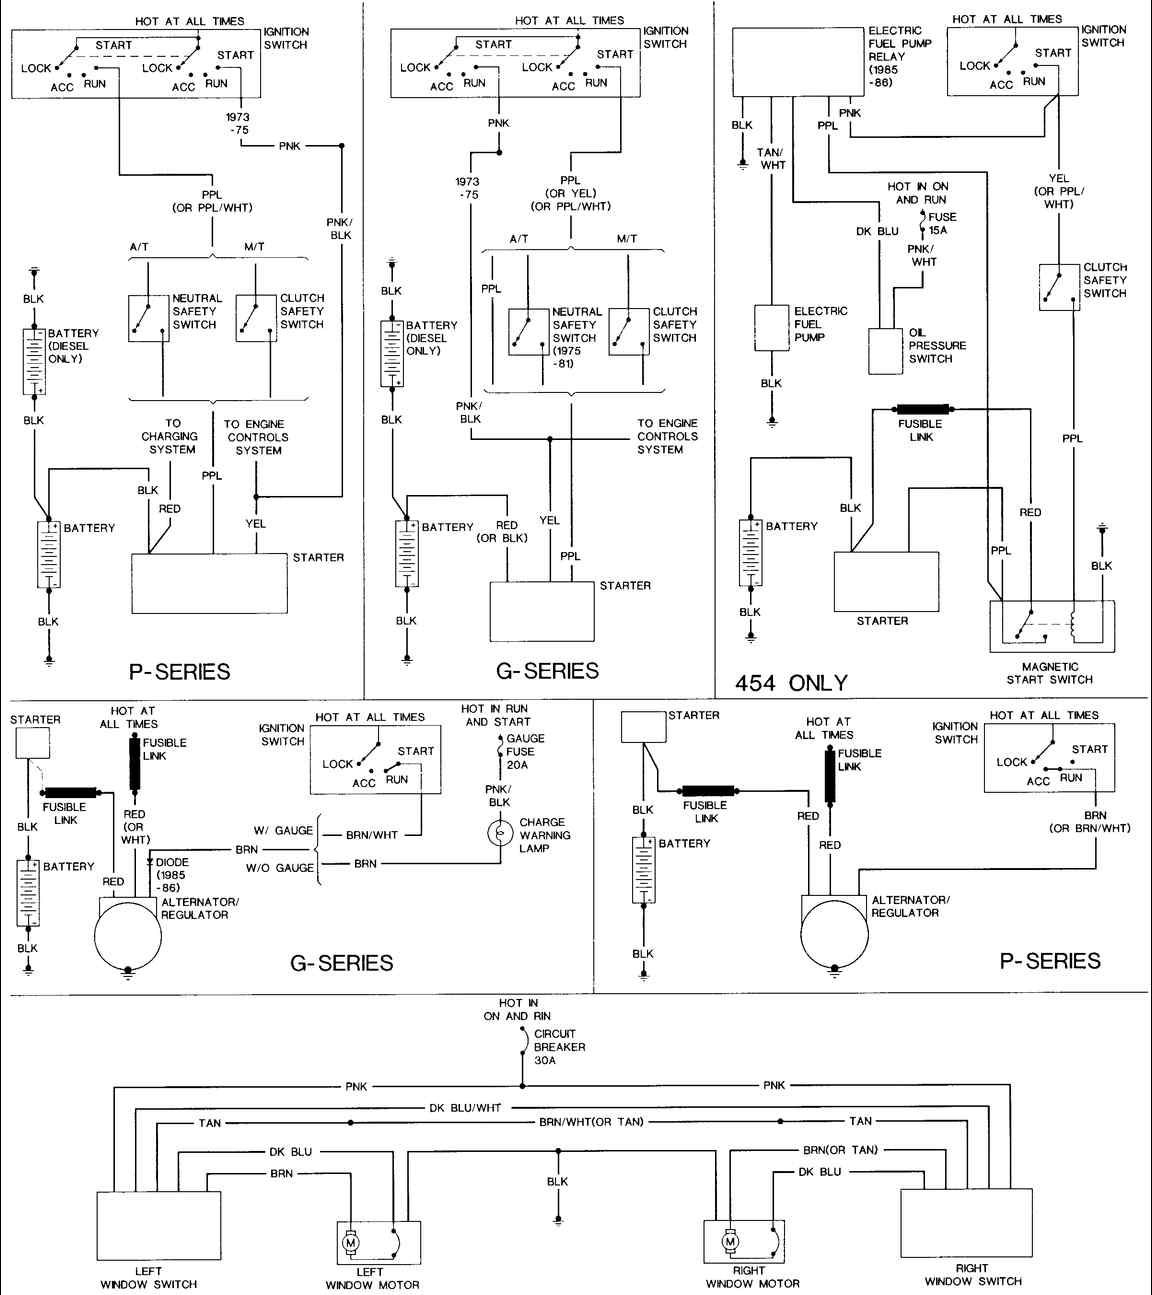 DIAGRAM] Hyundai H100 Van Wiring Diagram FULL Version HD Quality Wiring  Diagram - CROSBY.YTLIU.INFOSecure Online File Sharing crosby - Wiring And Fuse Image